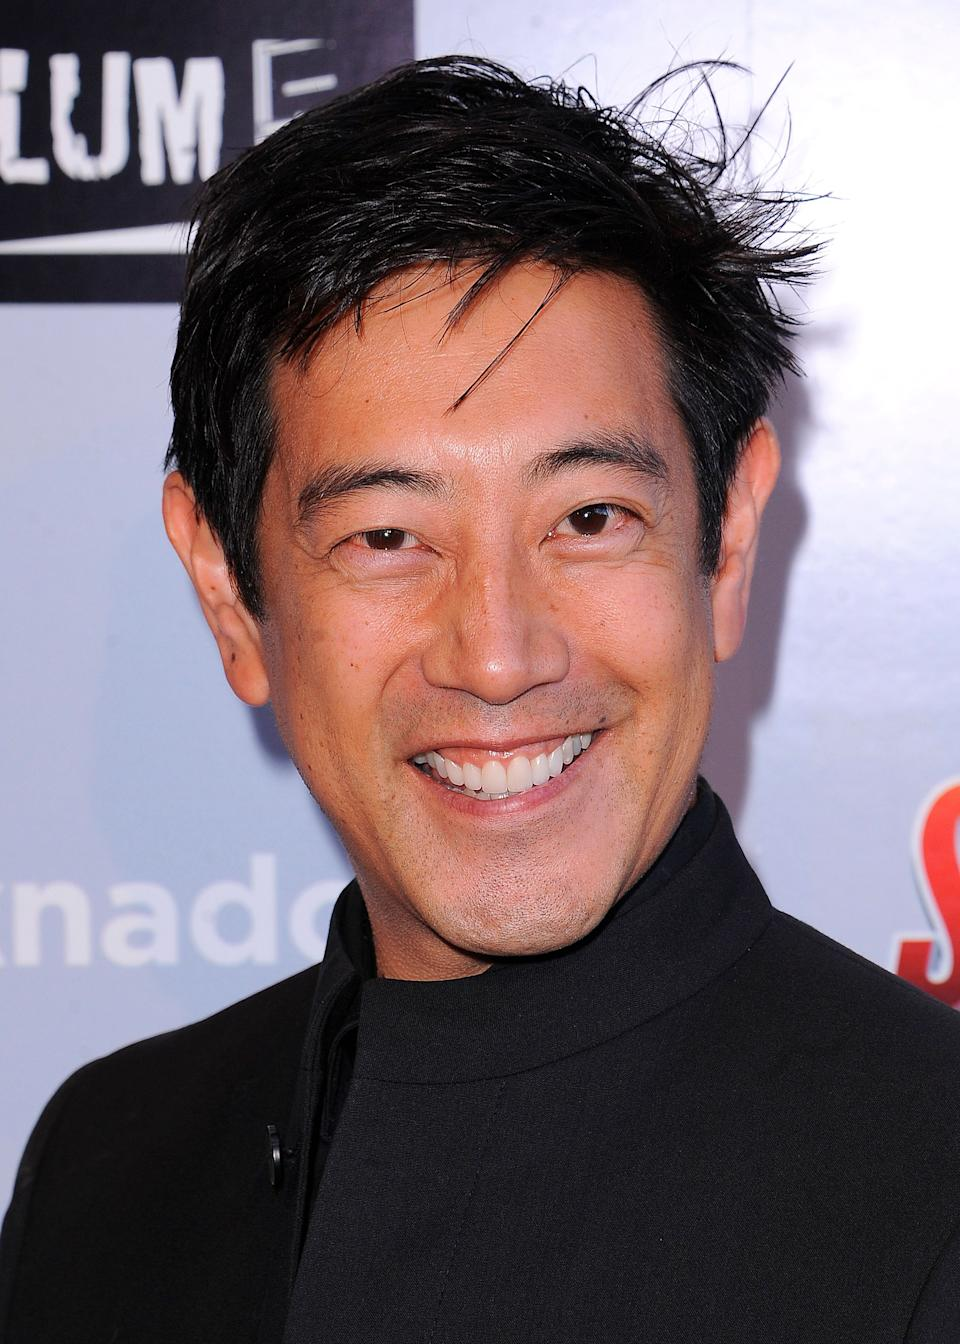 <strong>Grant Imahara (1970 – 2020)<br /><br /></strong>Known for his presenting work on shows like MythBusters and White Rabbit Project, Grant died suddenly at the age of 49, after suffering a brain aneurysm.